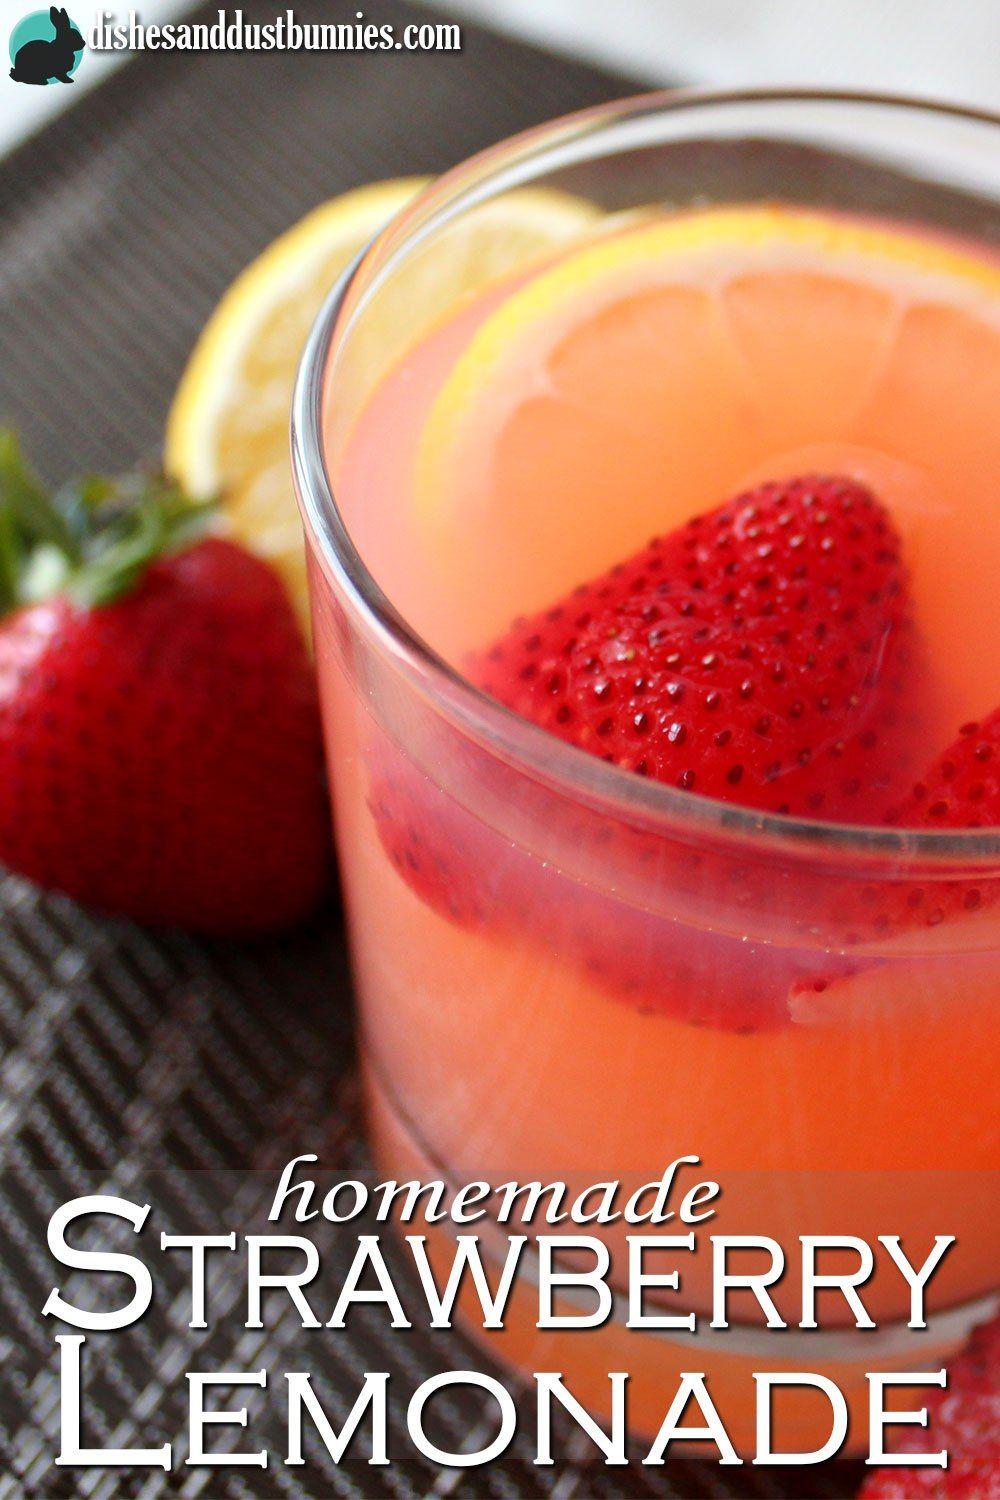 Homemade Strawberry Lemonade Recipe - Dishes & Dust Bunnies